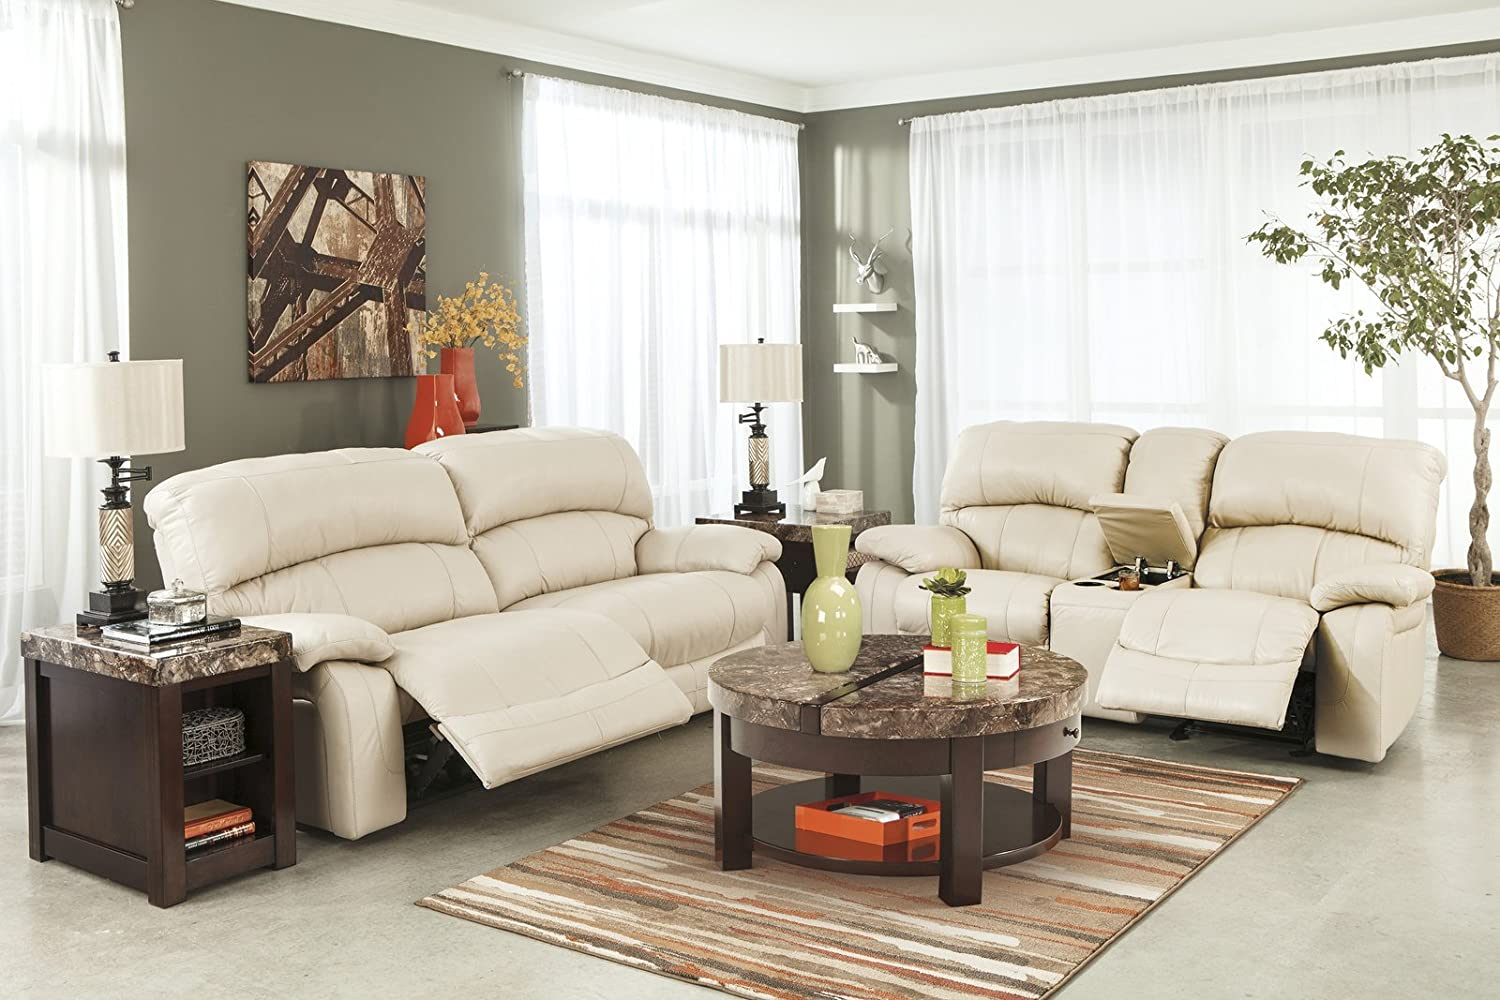 Cream Colored Leather Reclining Sofa Functionalities Net ~ Cream Leather Reclining Sofa